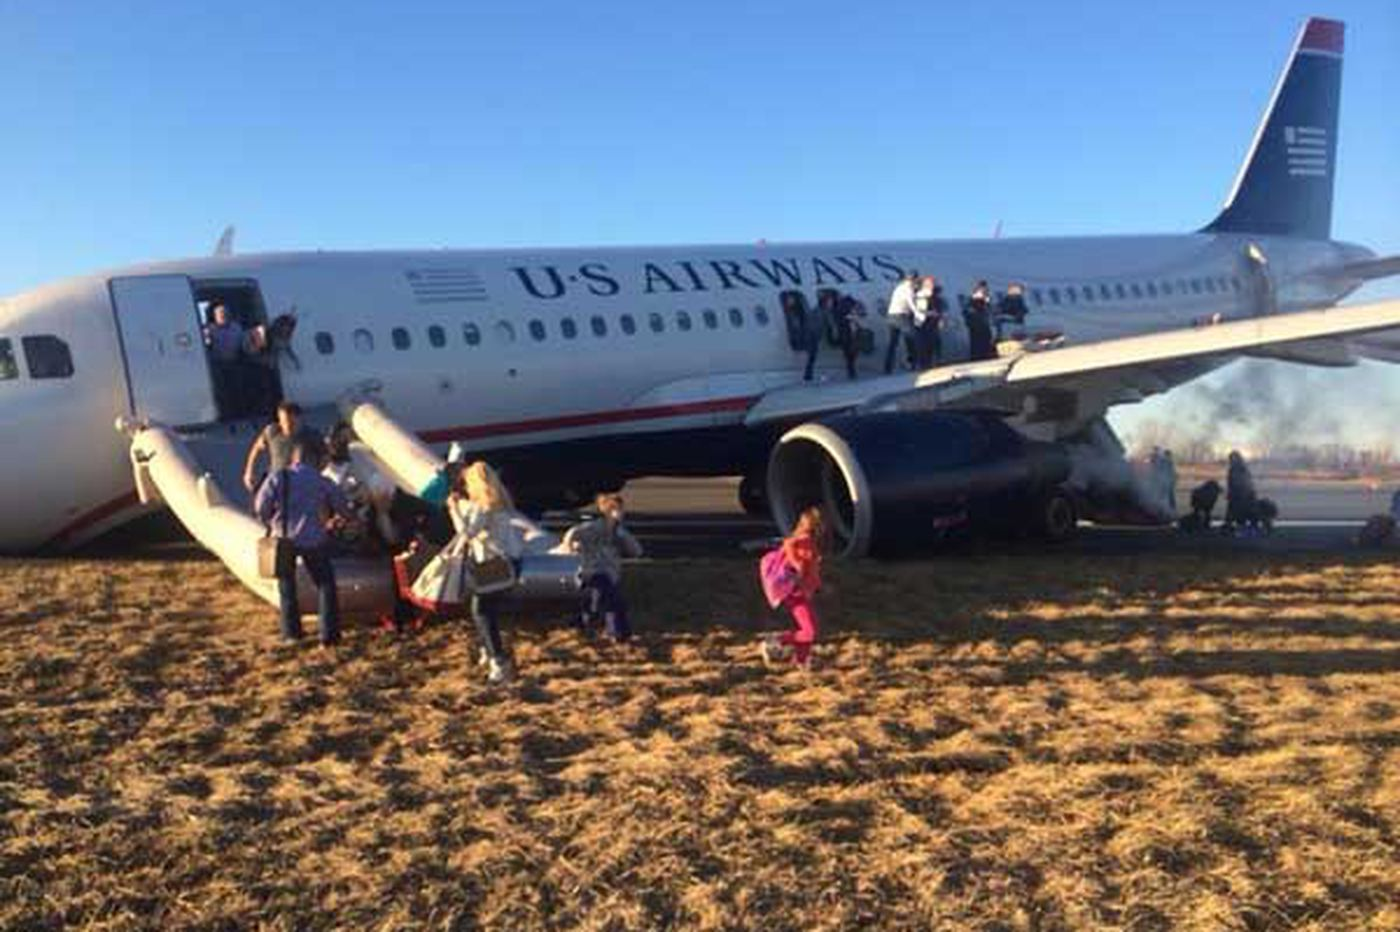 US Airways crash last year likely due to pilot error